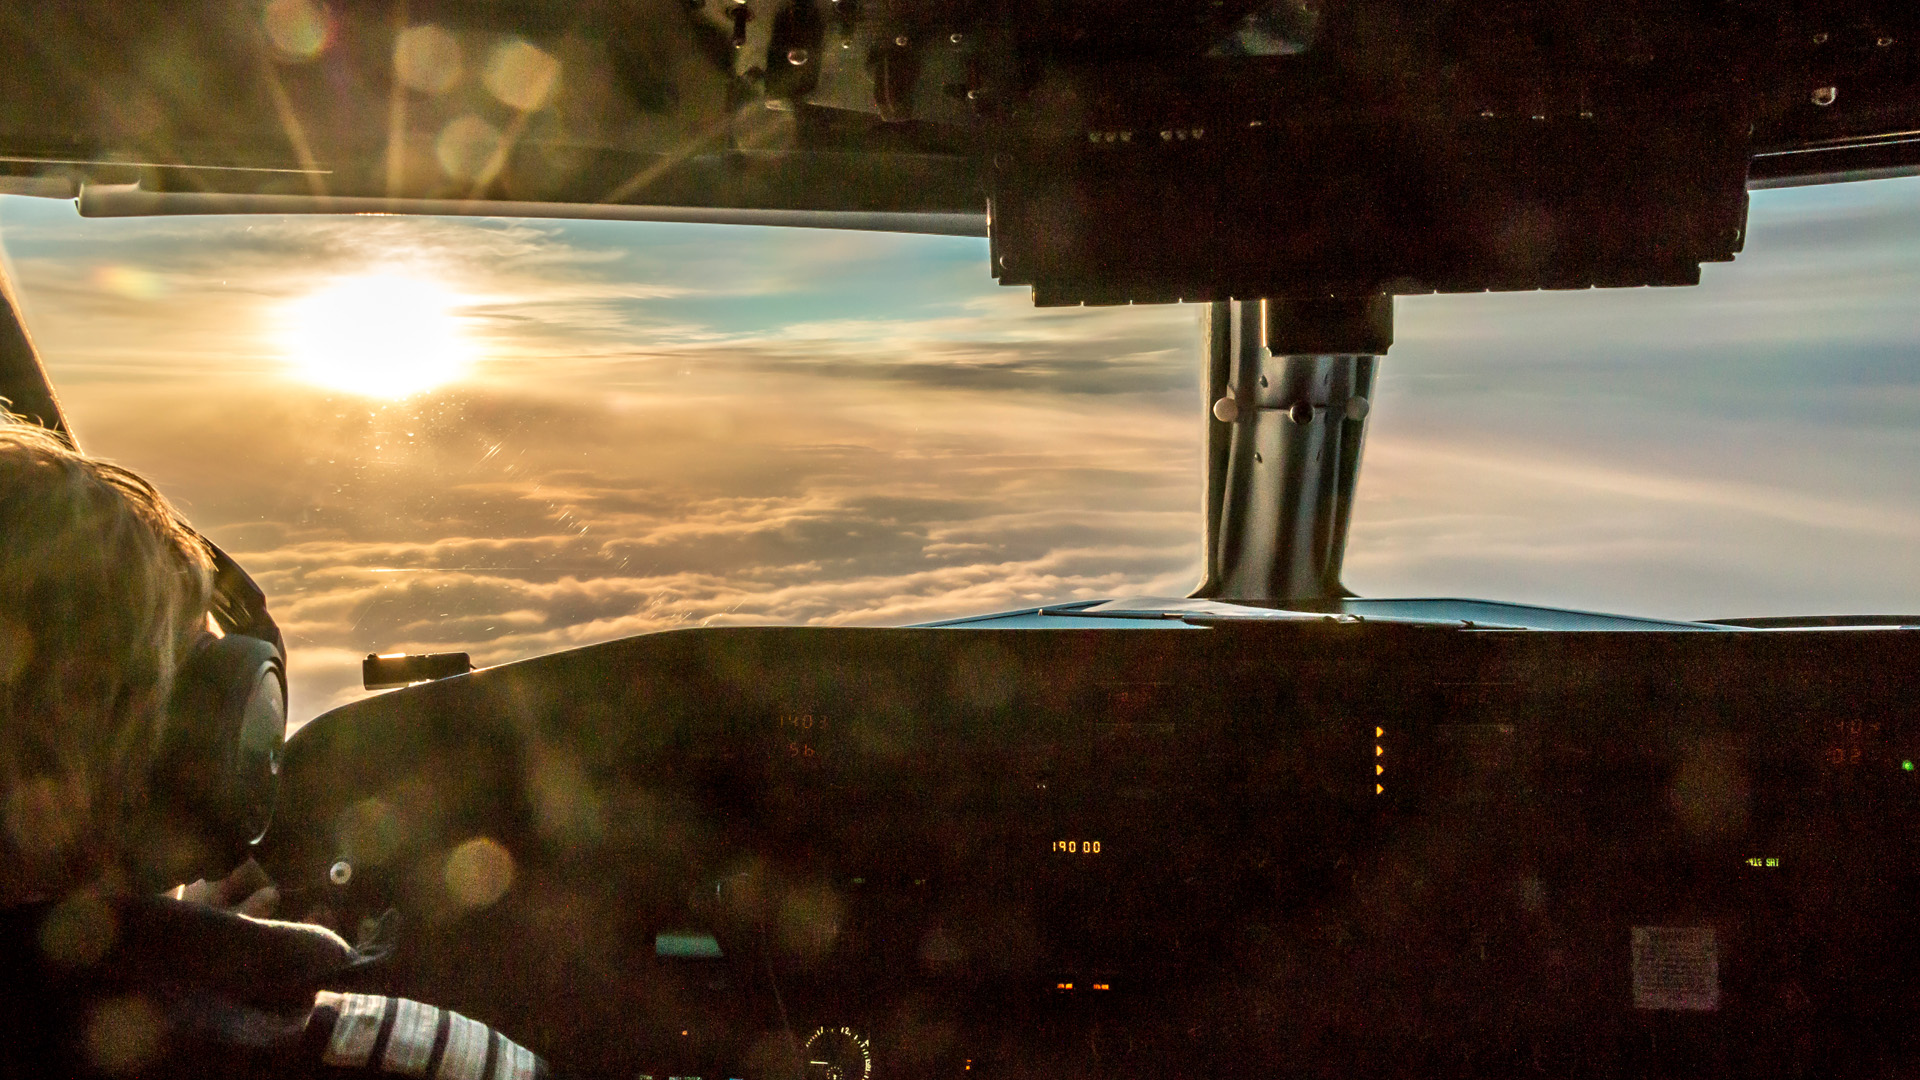 Looking out the flight deck of an airplane.